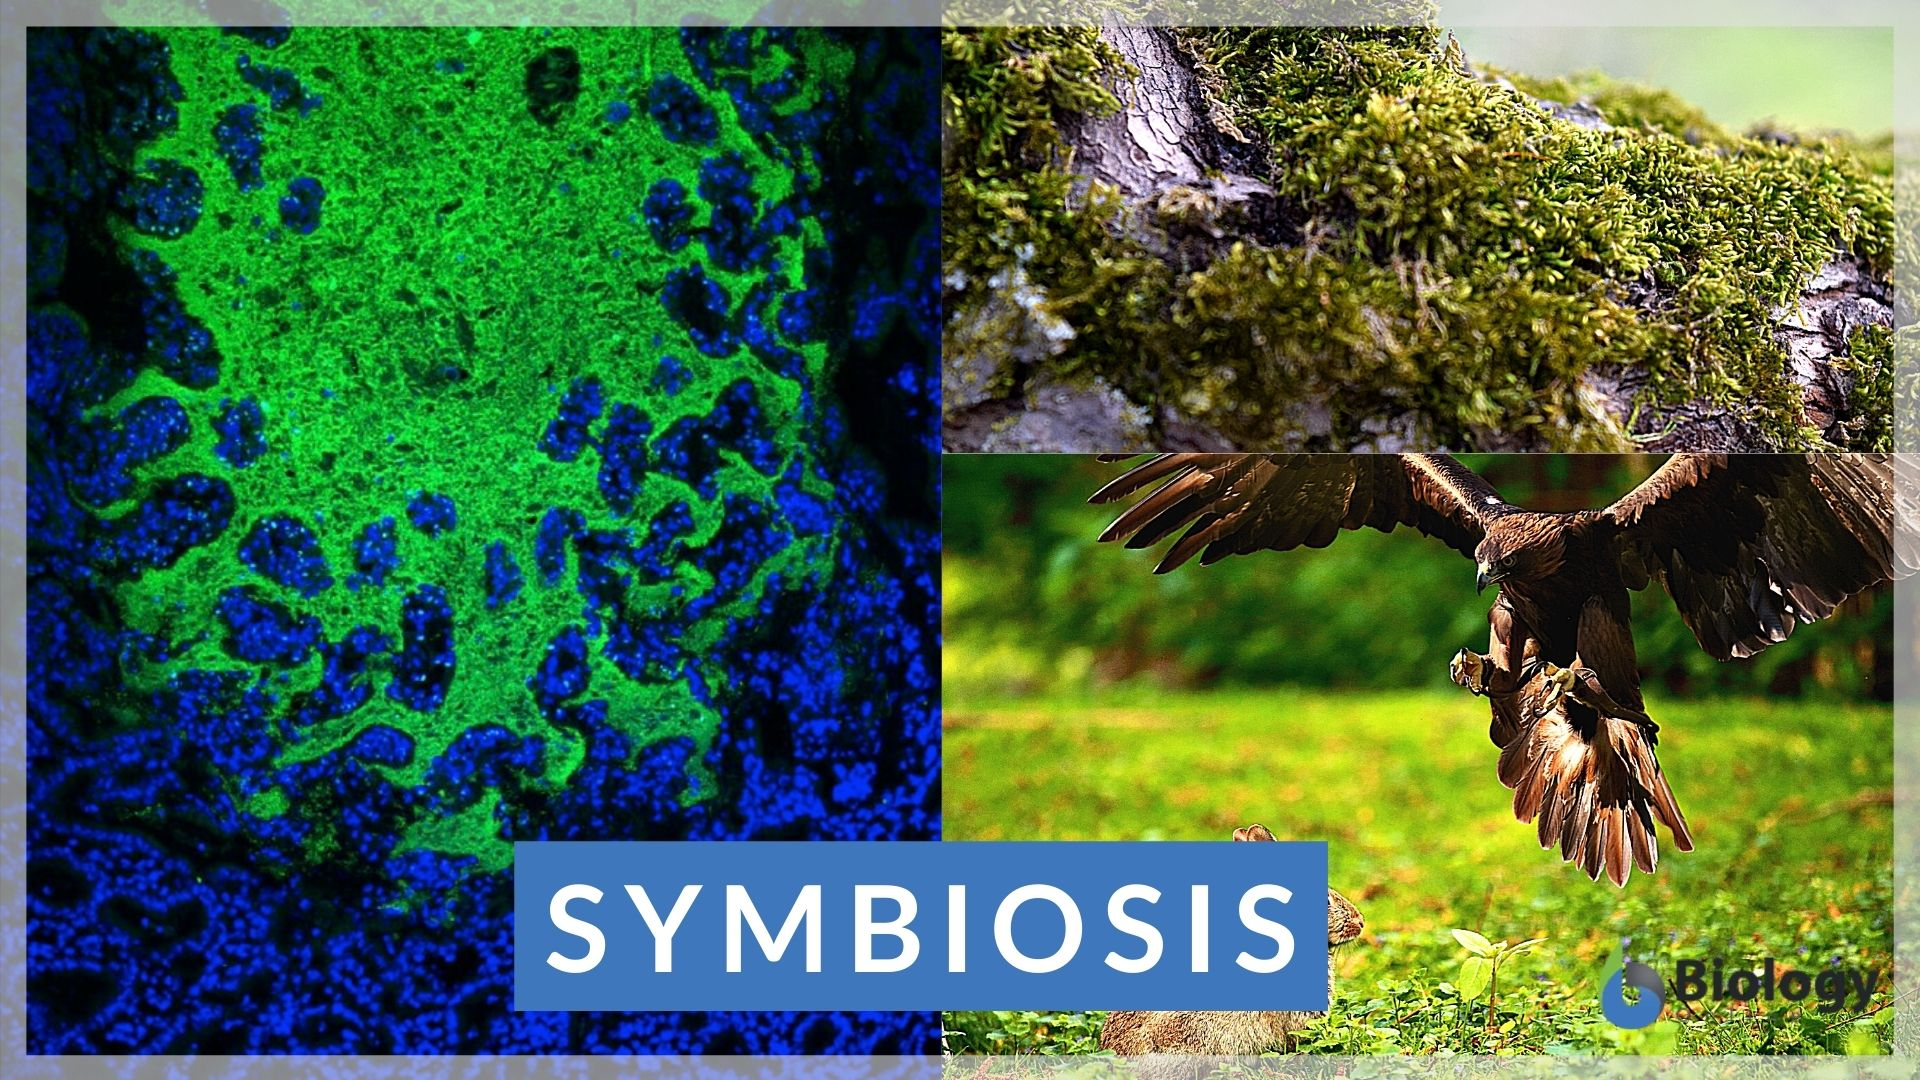 Symbiosis Definition And Examples